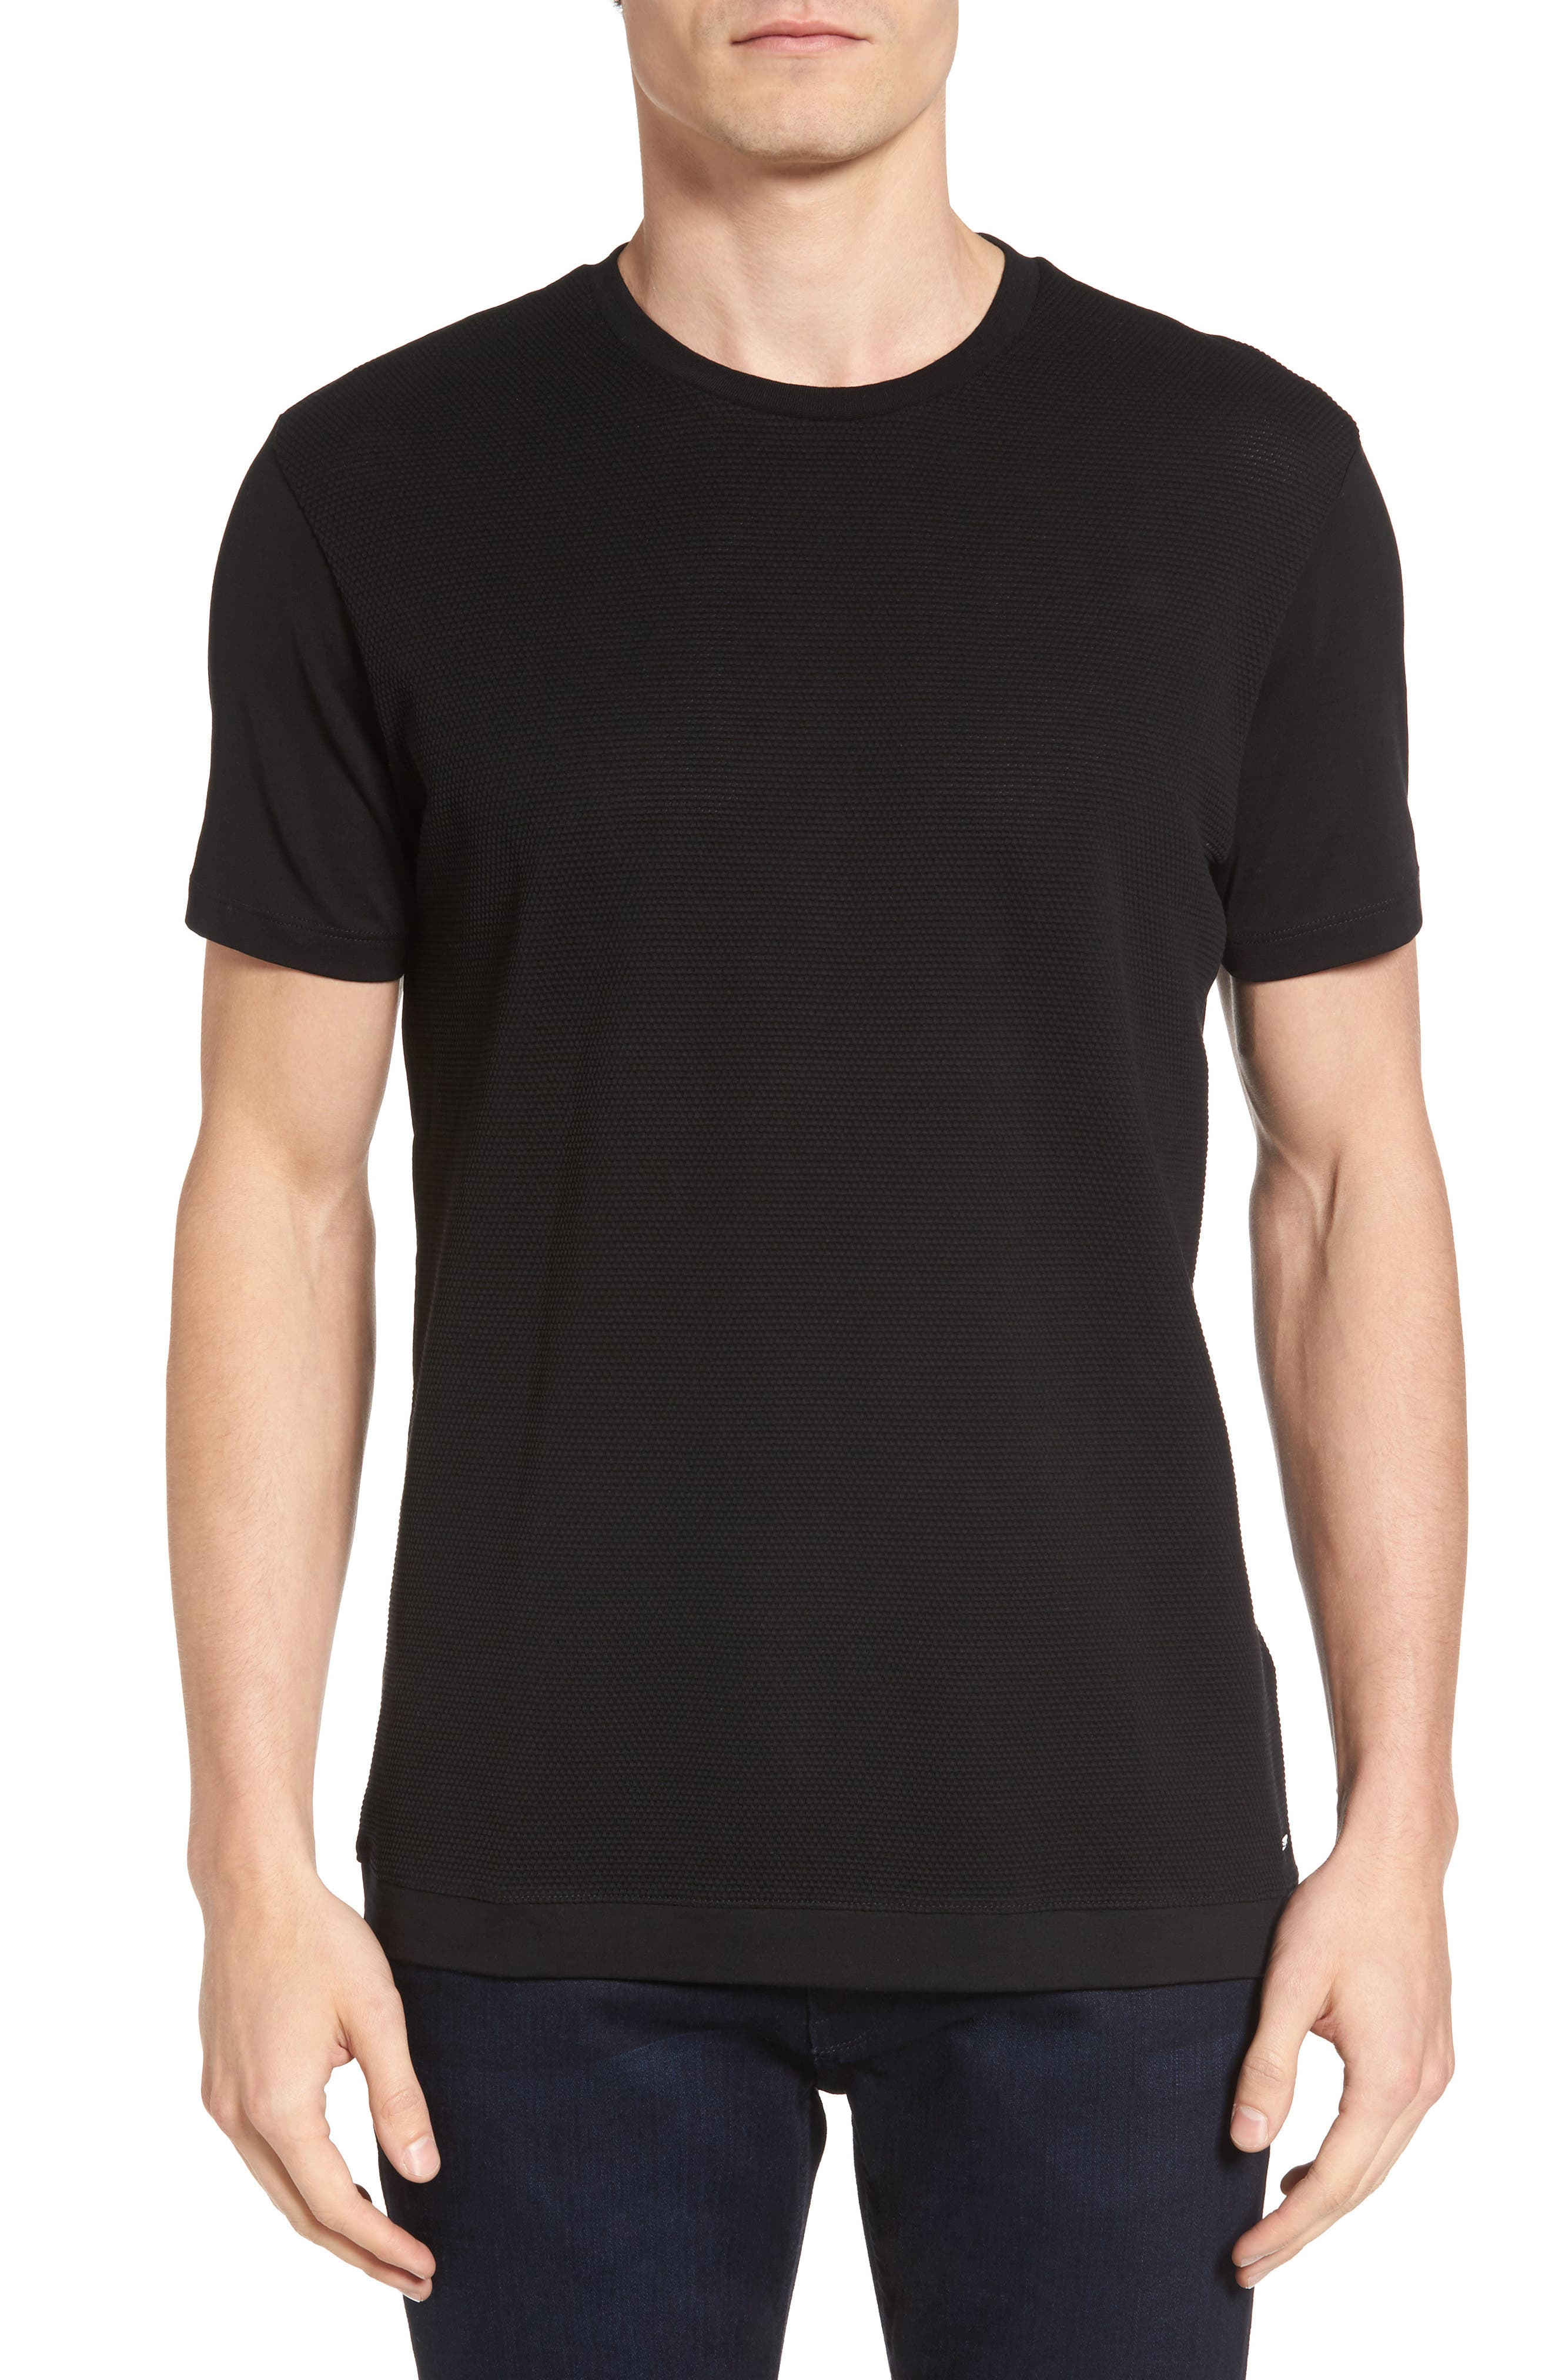 Tessler Micropattern T-Shirt,                         Main,                         color, Black